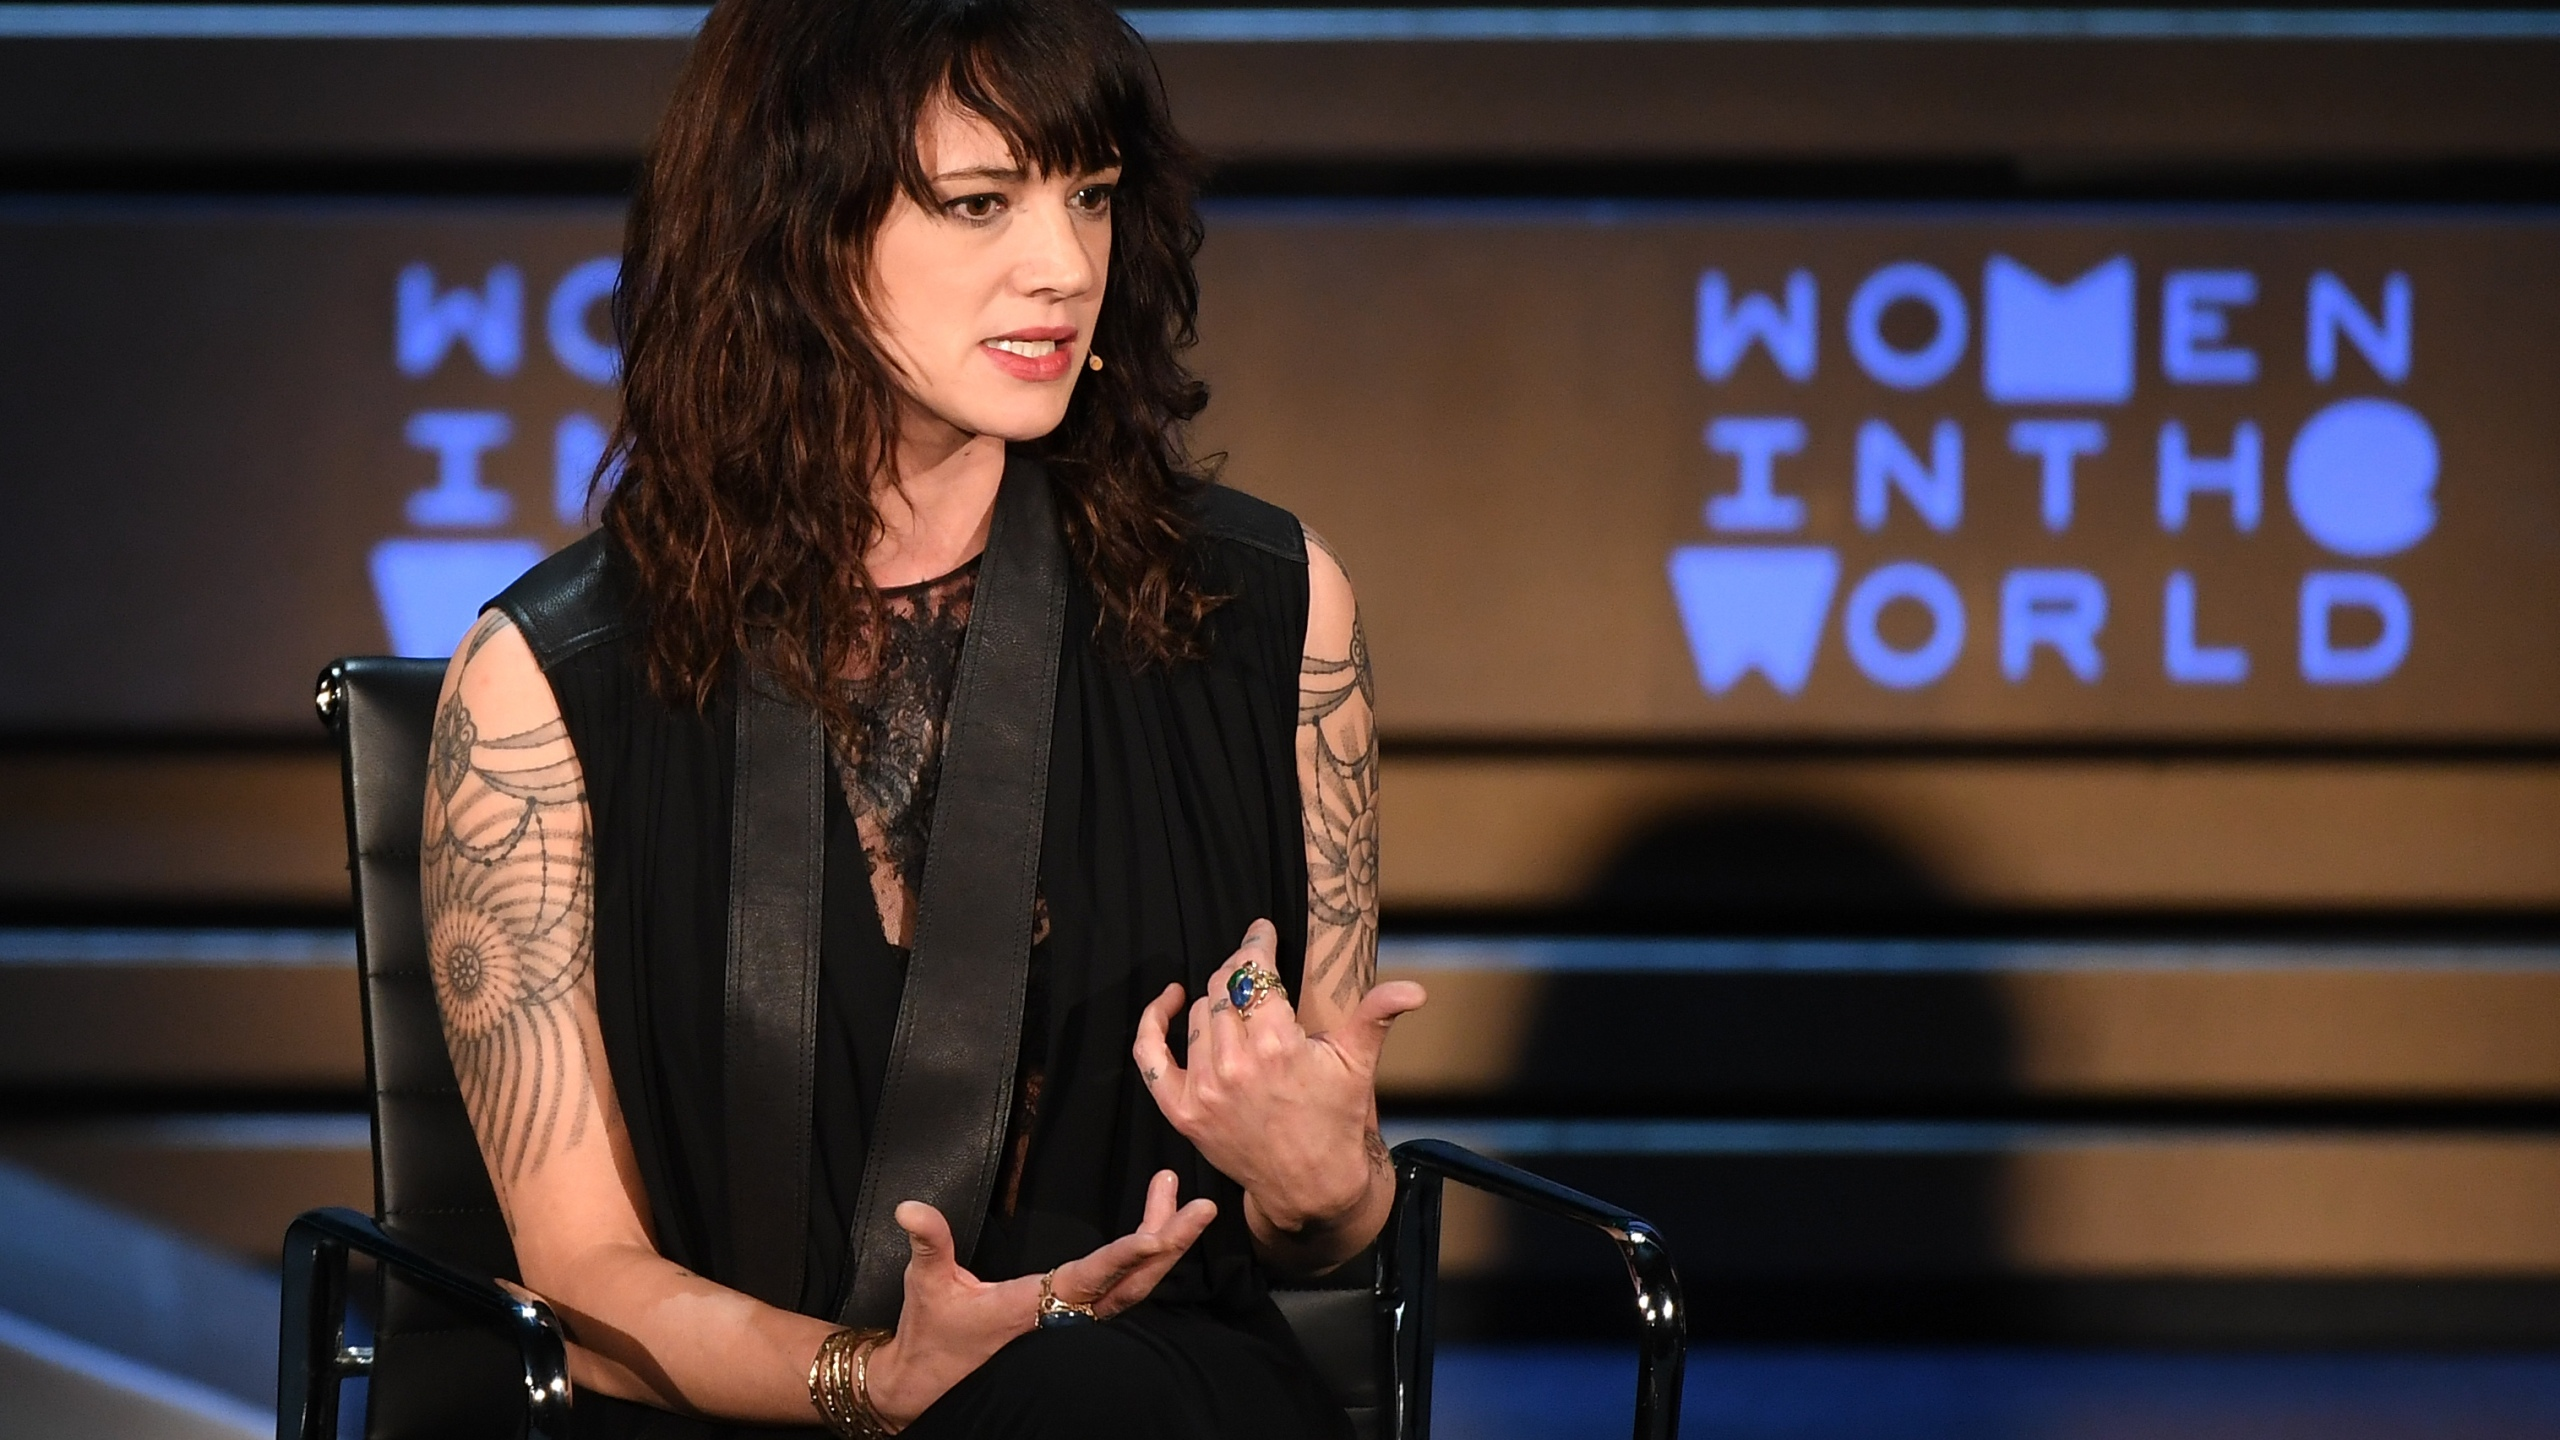 Actor/director Asia Argento speaks onstage at the 2018 Women In The World Summit at Lincoln Center on April 12, 2018, in New York City. (Credit: ANGELA WEISS/AFP/Getty Images)